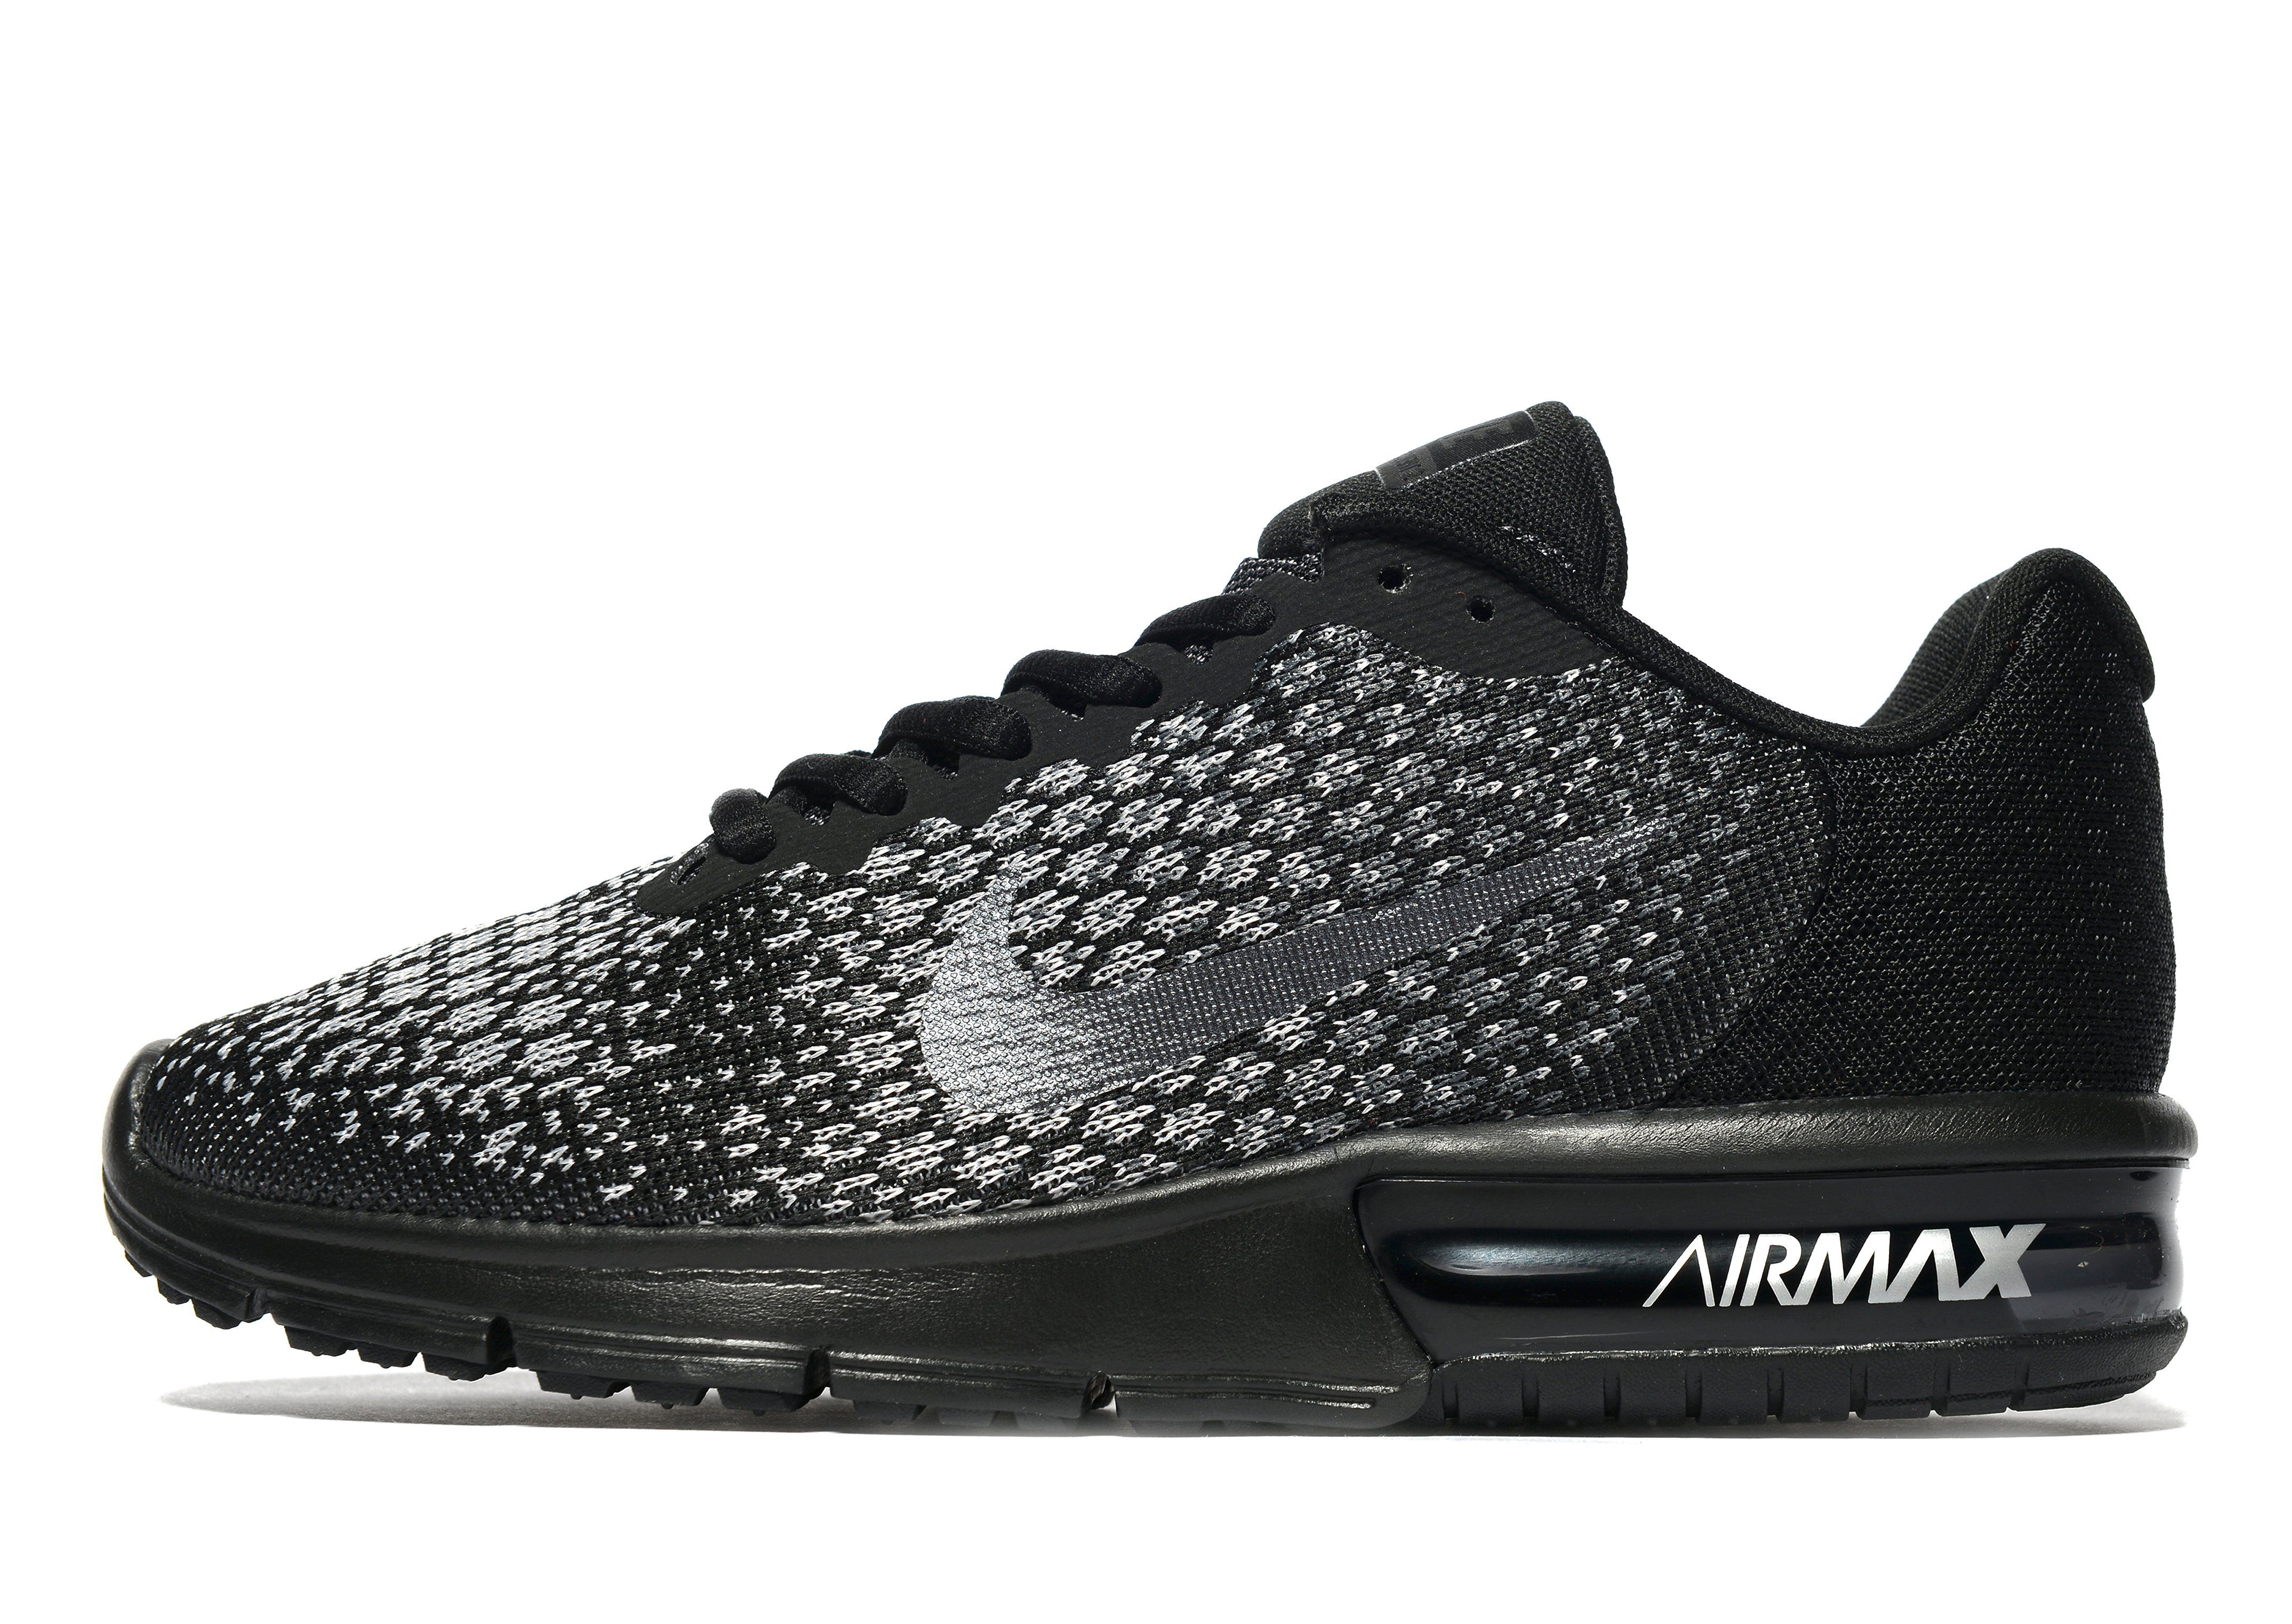 nike air max sequent 2 women 39 s jd sports. Black Bedroom Furniture Sets. Home Design Ideas